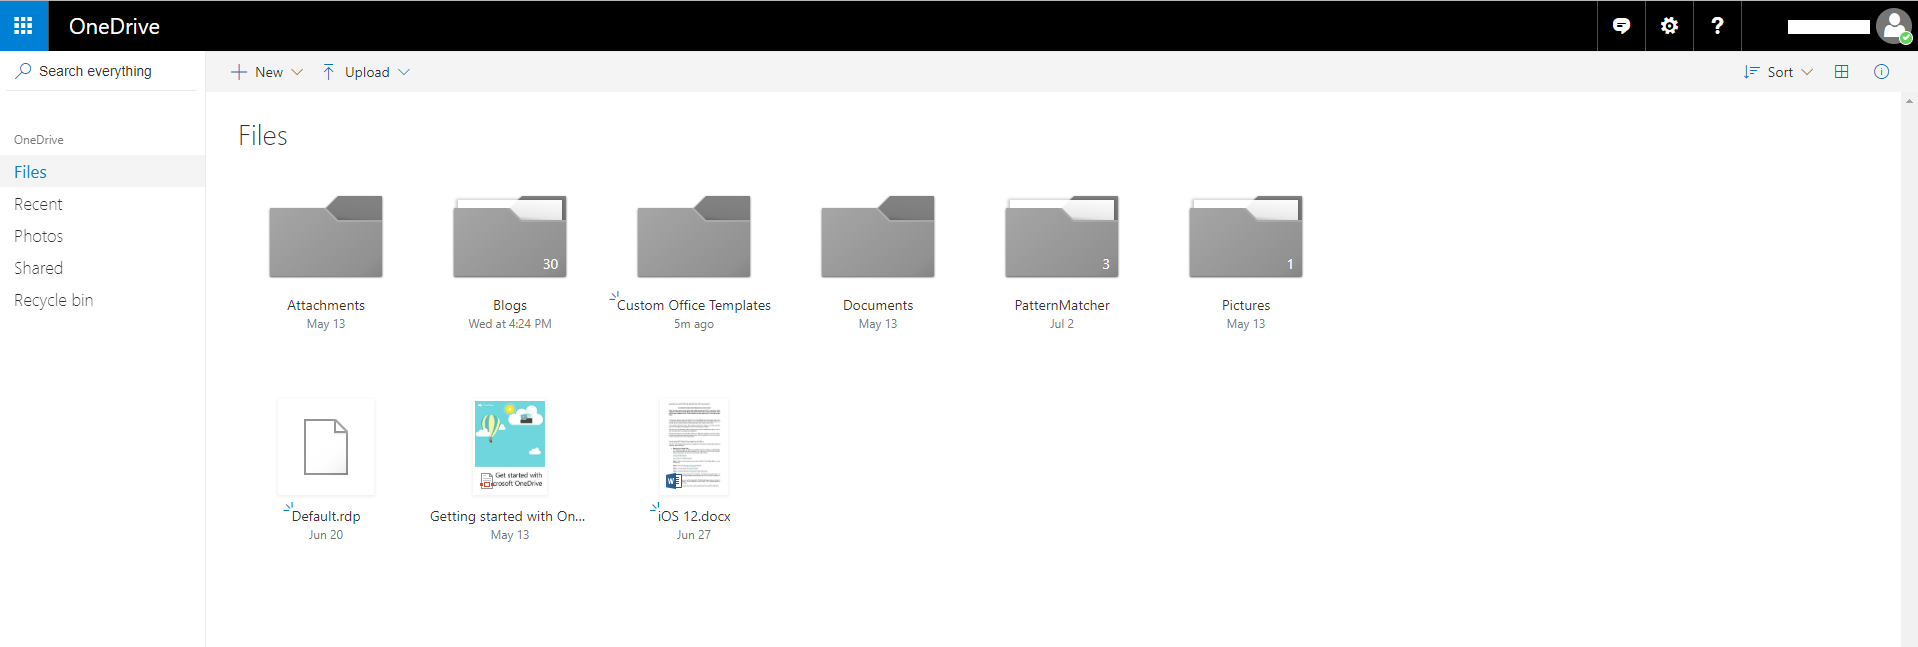 one drive on web app